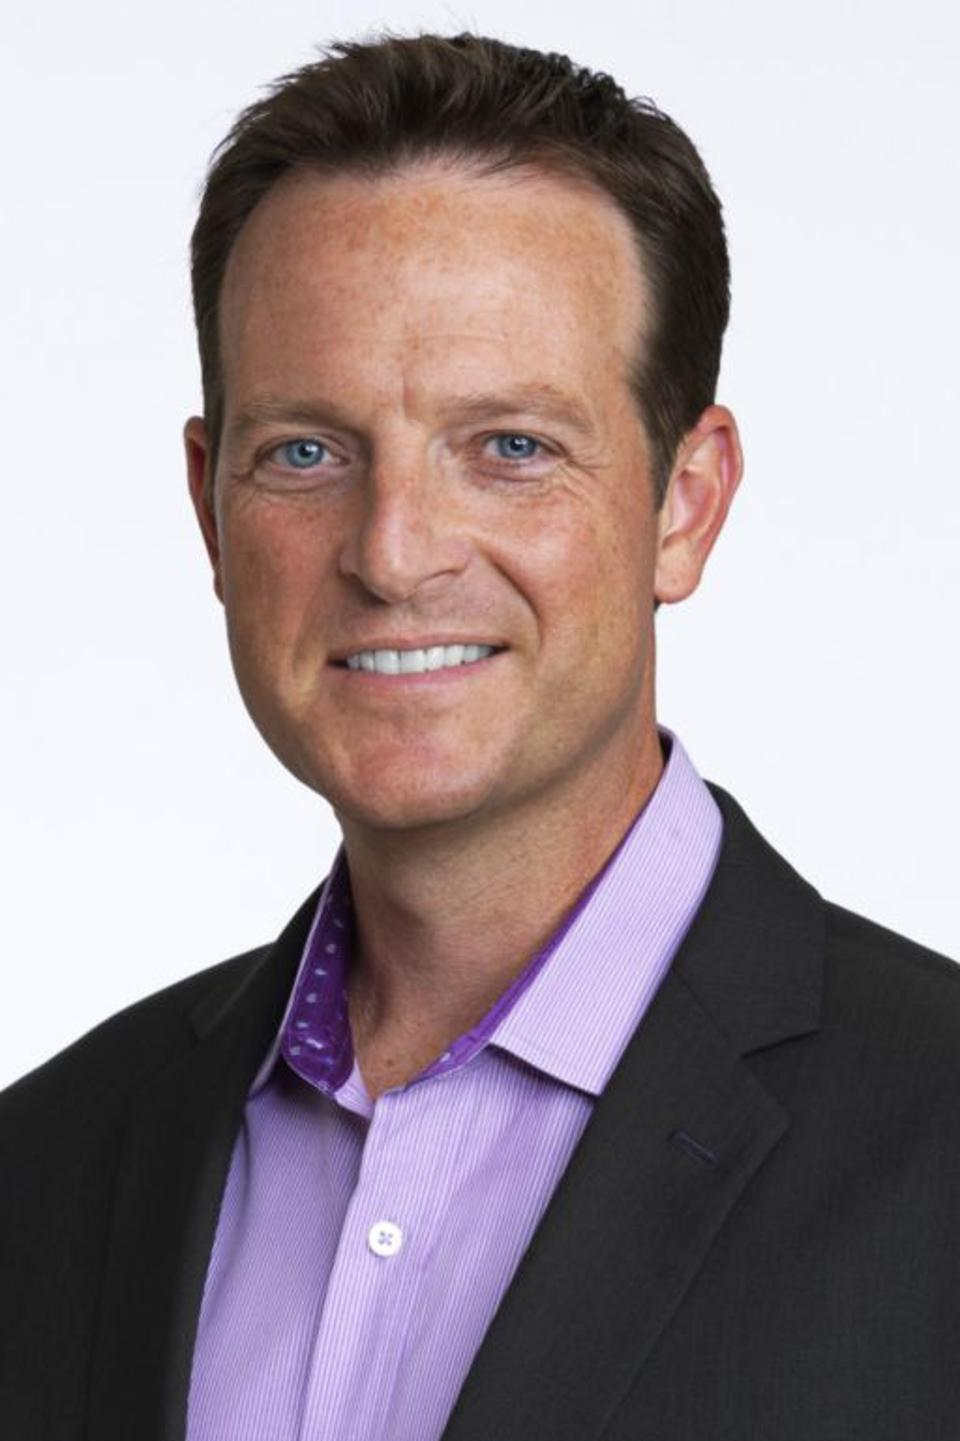 Shannon O'Neill, CFO of AccuWeather